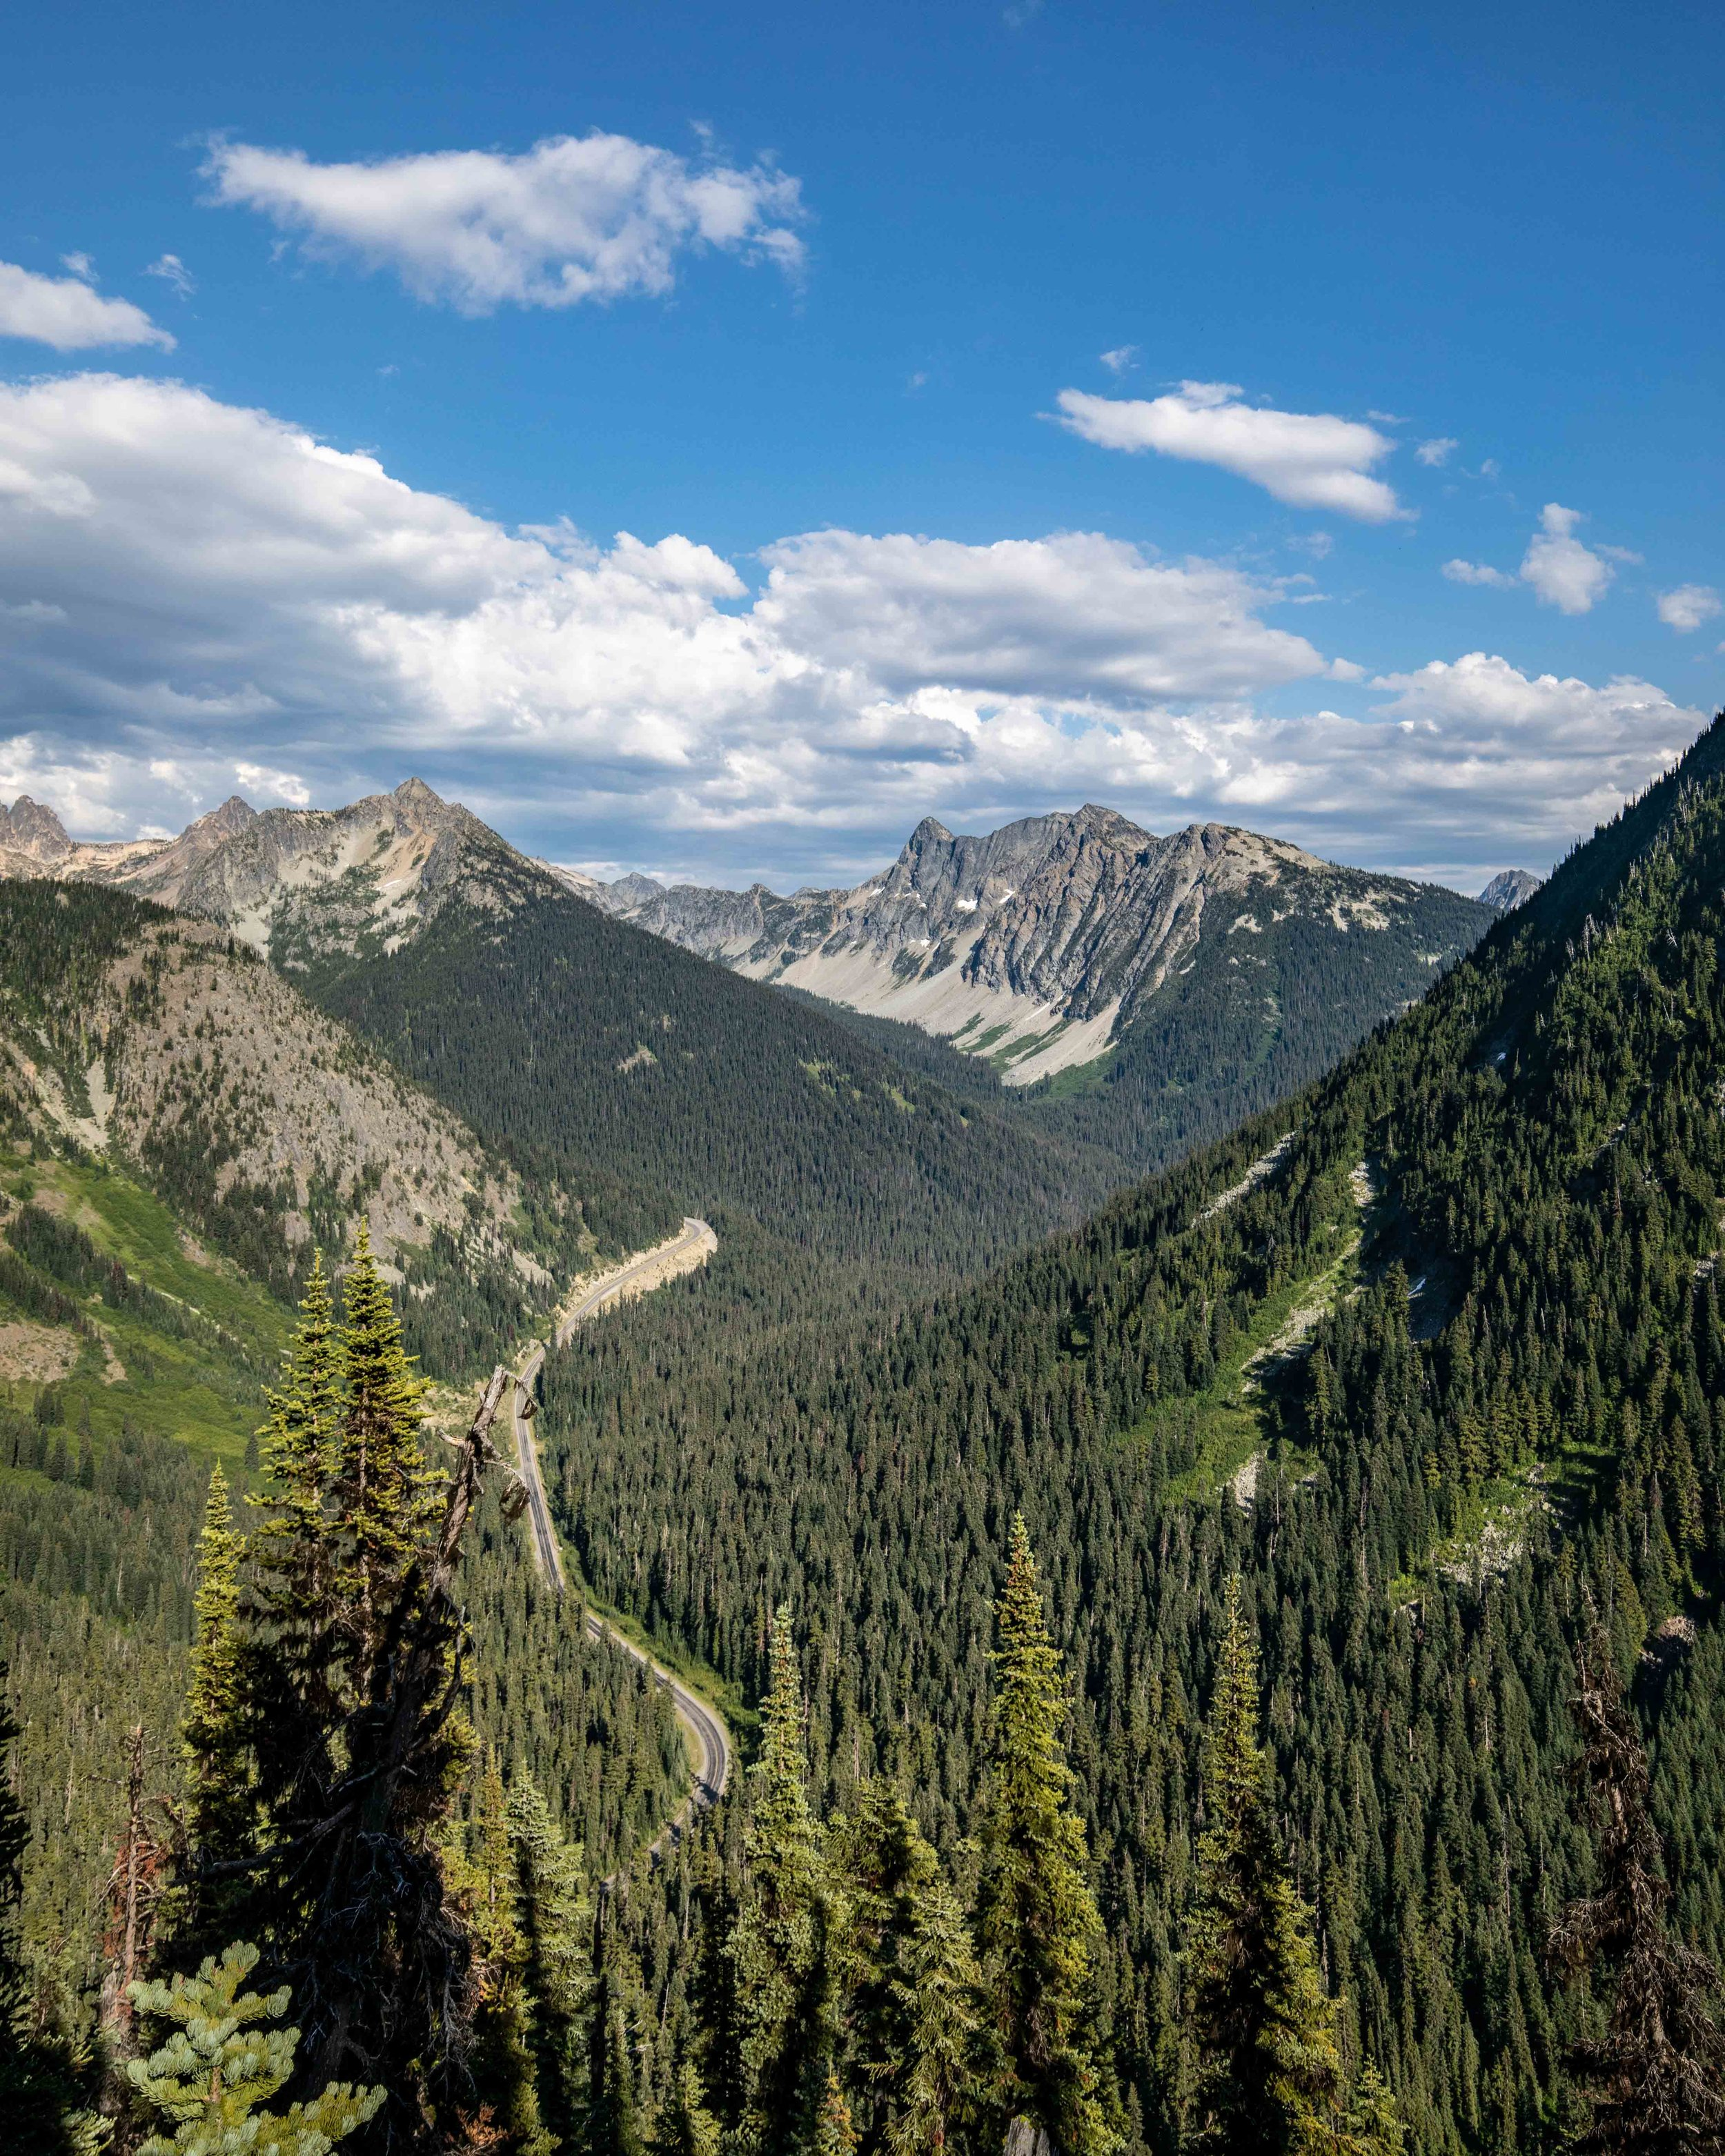 The road at North Cascades National Park